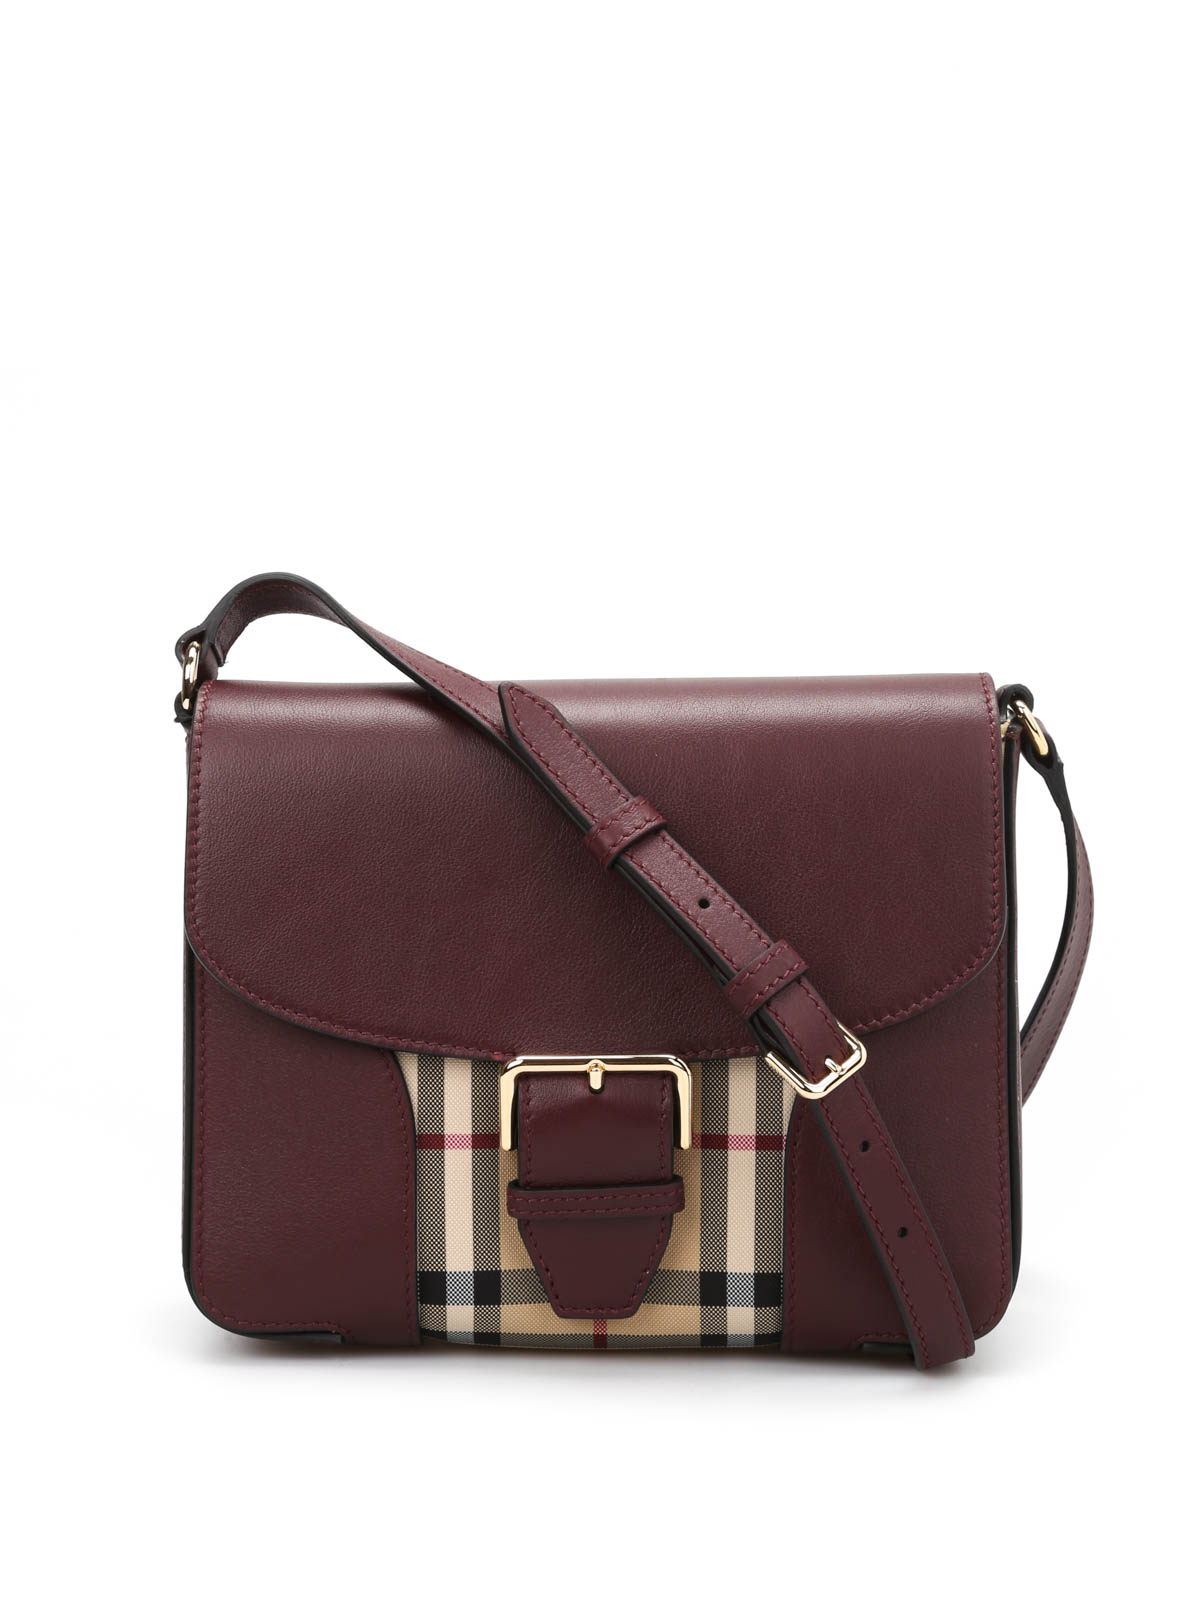 2c74a172d4d8 Burberry - Small horseferry check cross body - cross body bags ...